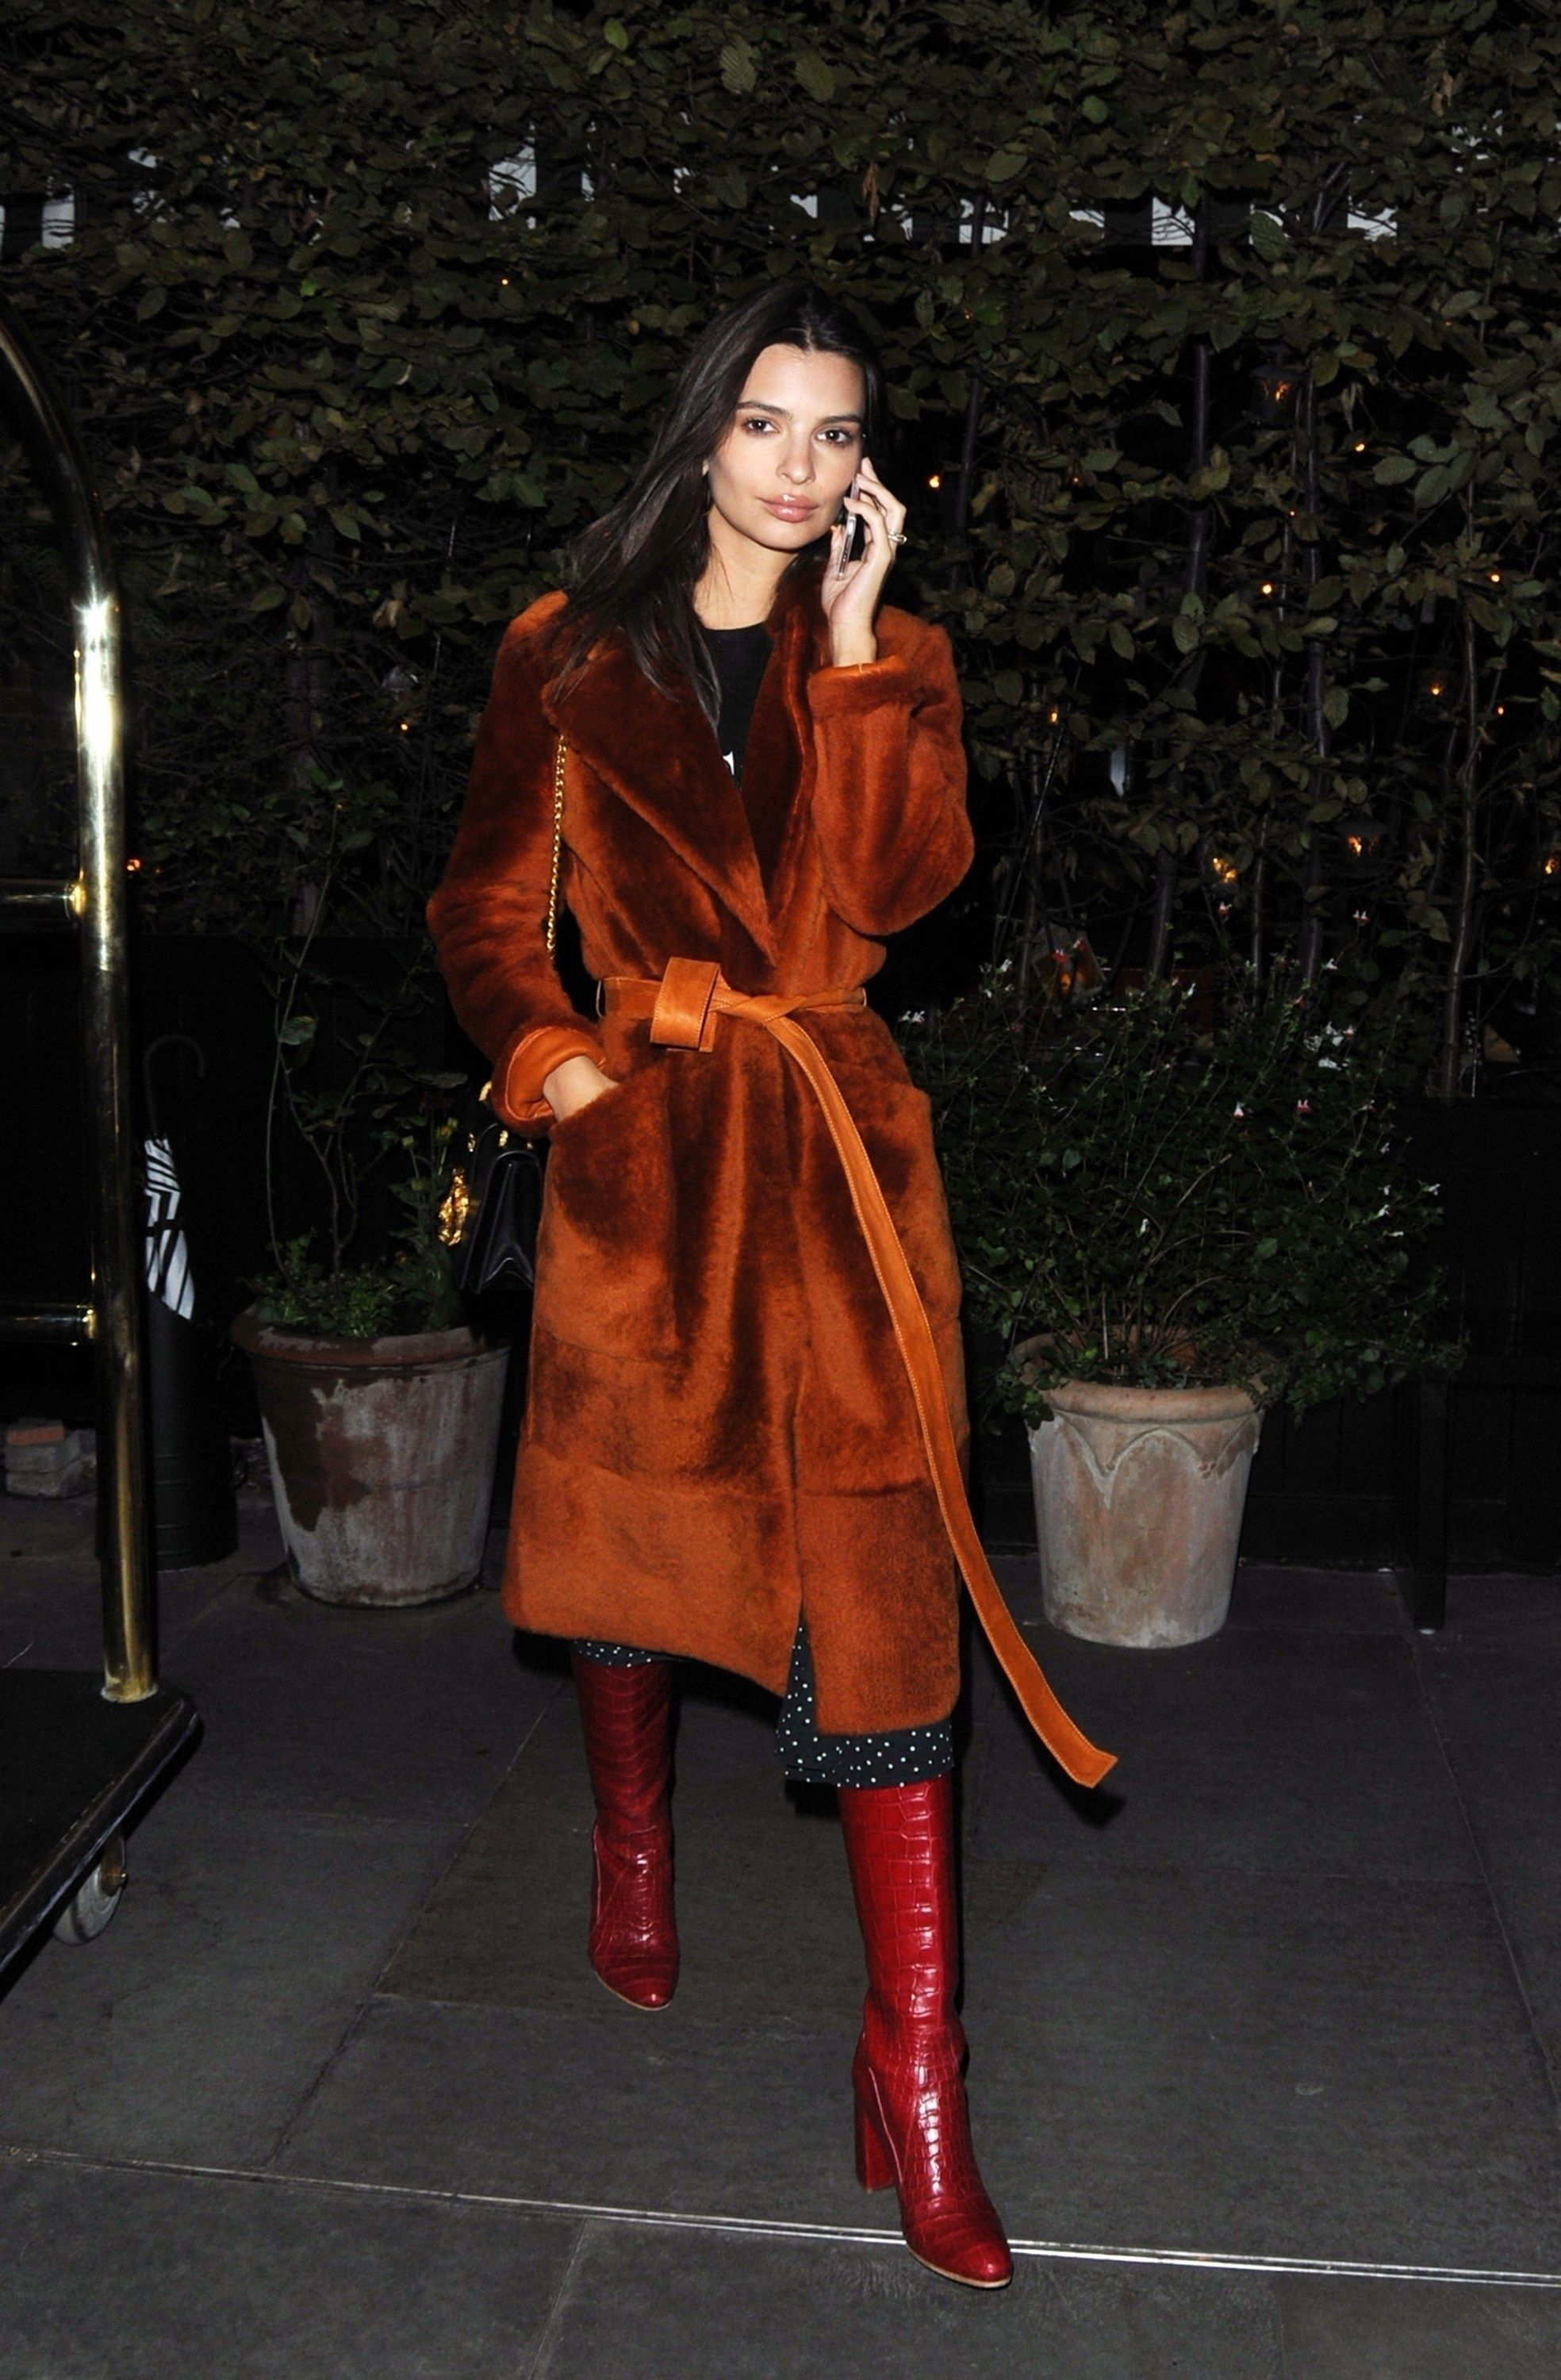 ecec5add3a82a Emily Ratajkowski Takes the Statement Fur Coat to New Heights ...